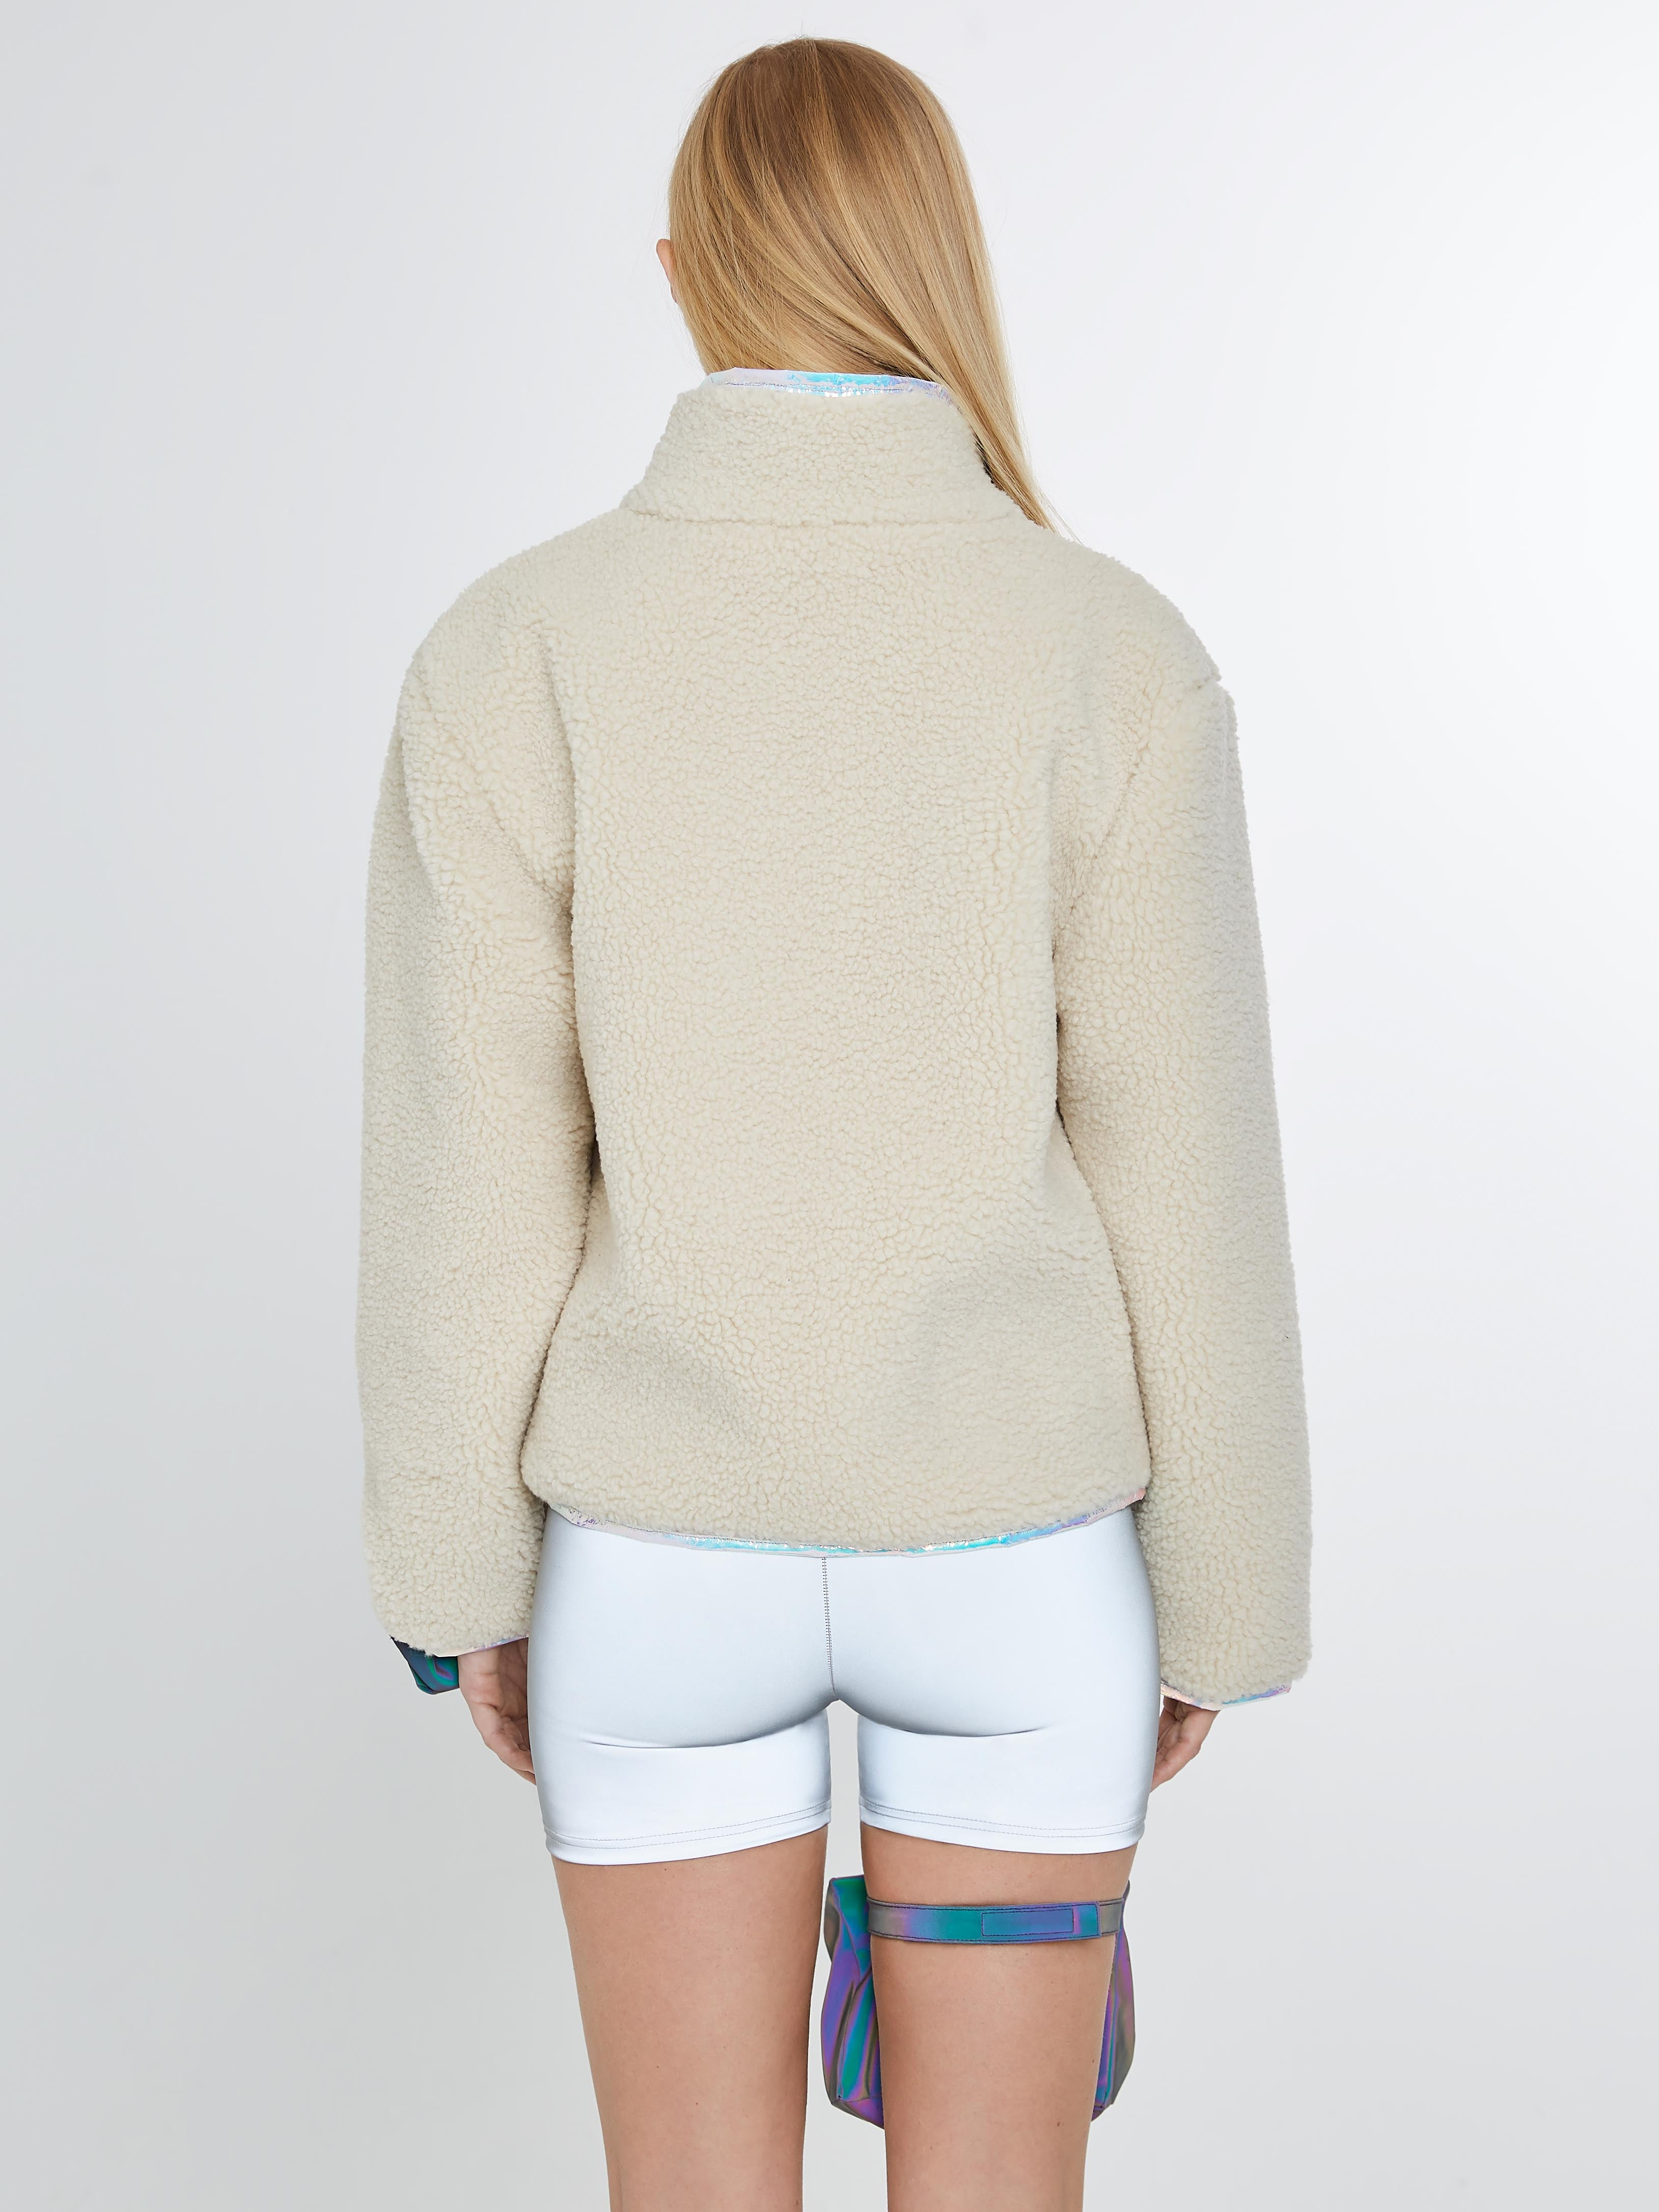 Shearling sweater with iridescent piping